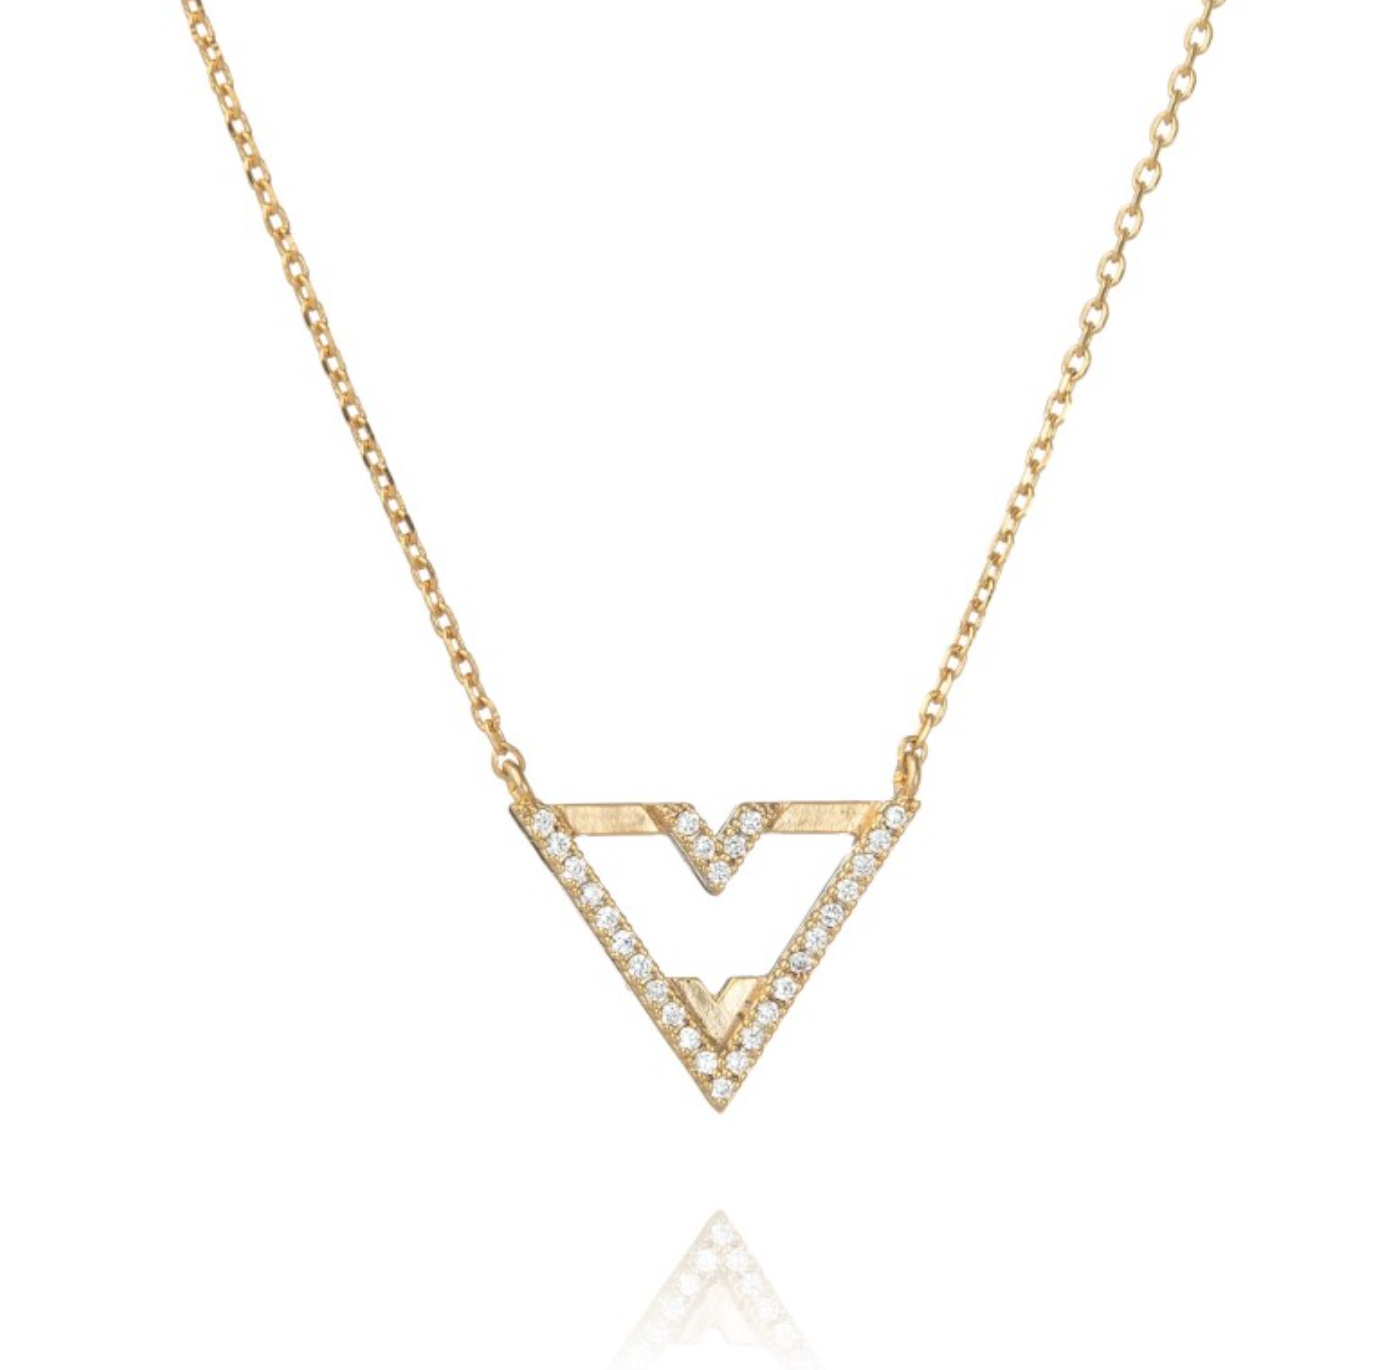 ... Stelton Kitchen And Bath By Trouva Astrid Amp Miyu Rose Gold Fitzgerald  Triangle Necklace ...